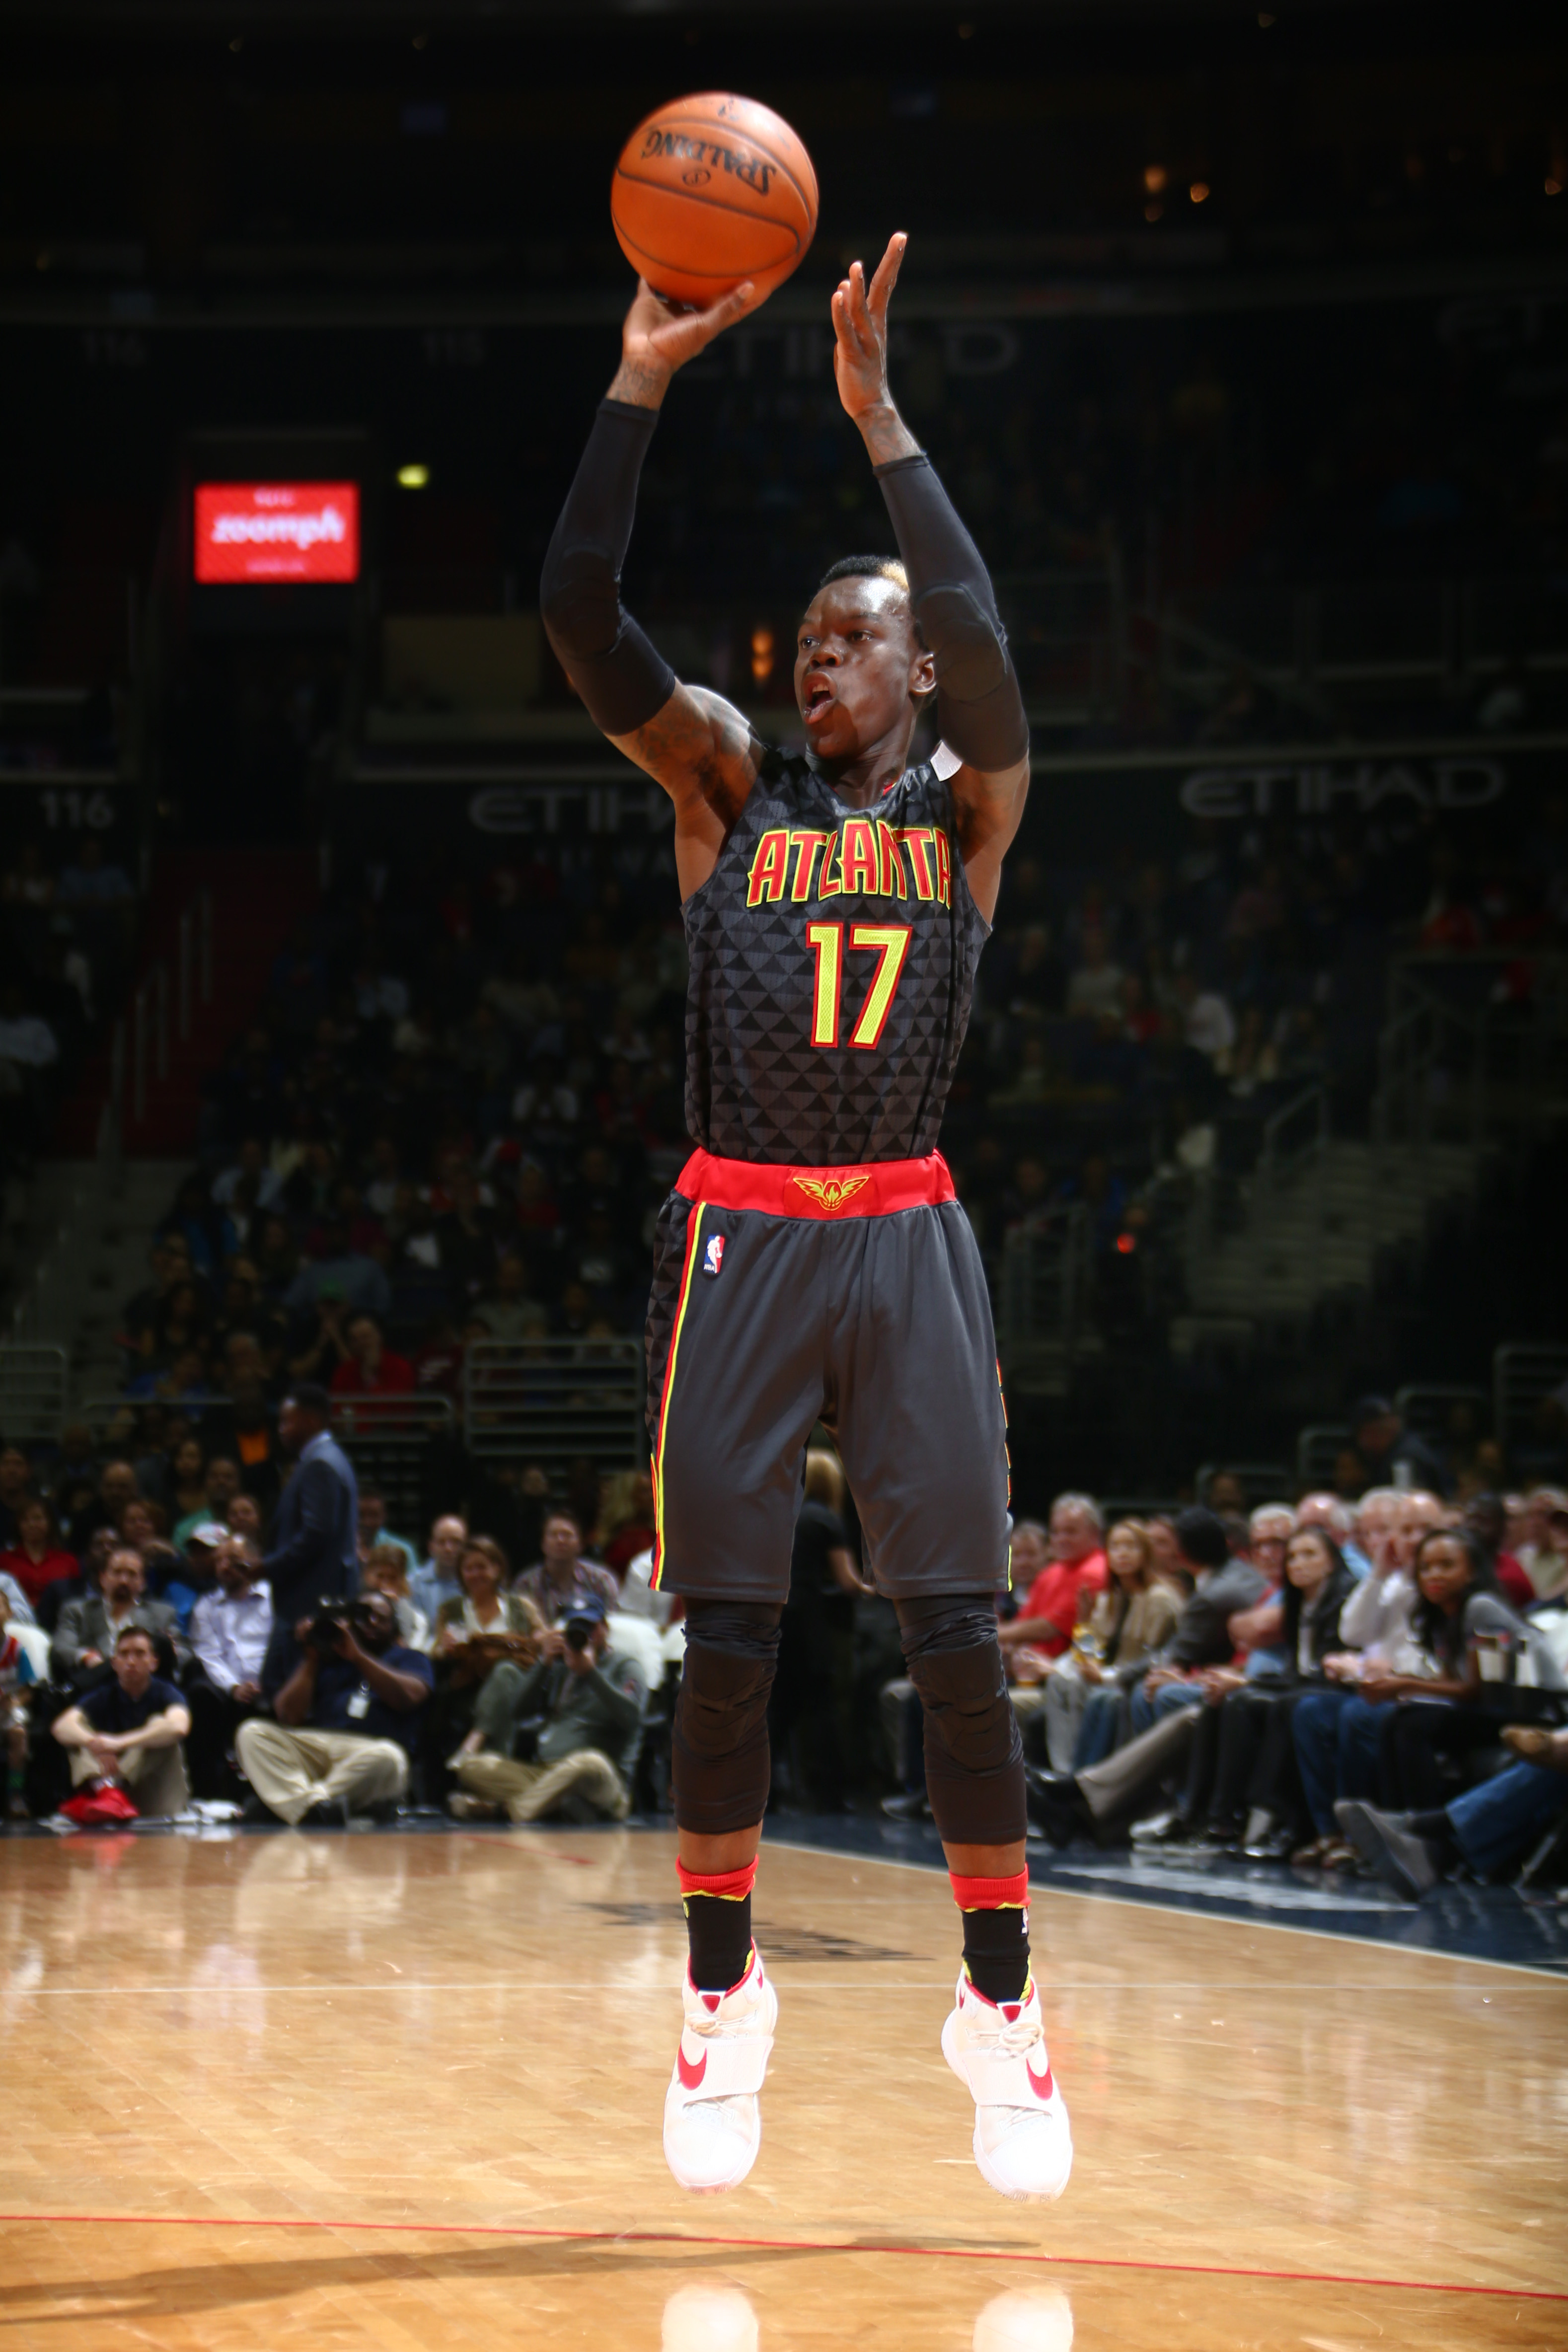 SAN ANTONIO, TX  - MARCH 23: Dennis Schroder #17 of the Atlanta Hawks shoots against the Washington Wizards during the game on March 23, 2016 at AT&T Center in San Antonio, Texas. (Photo by Chris Covatta/NBAE via Getty Images)